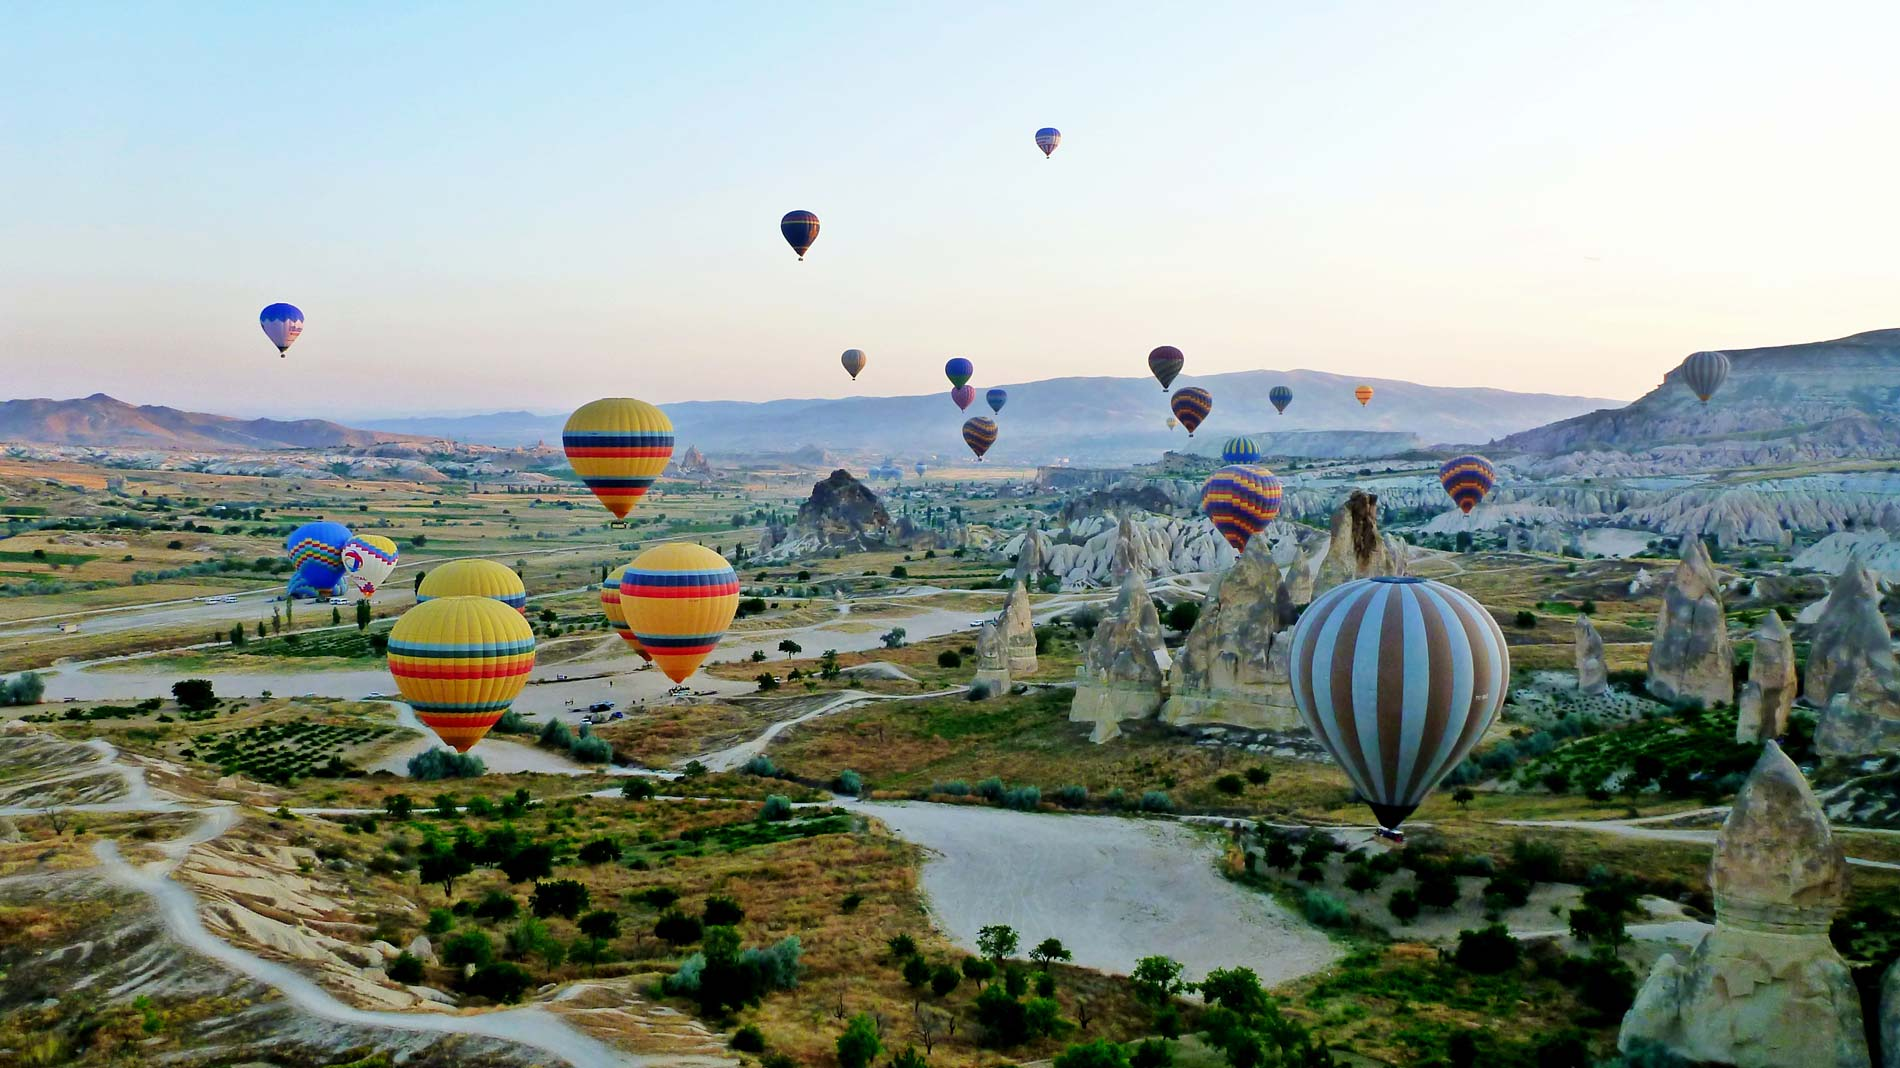 tourism in turkey Travel in turkey: following a significant decline in inbound arrivals, with the de-escalation of political tensions and security threats, the travel.